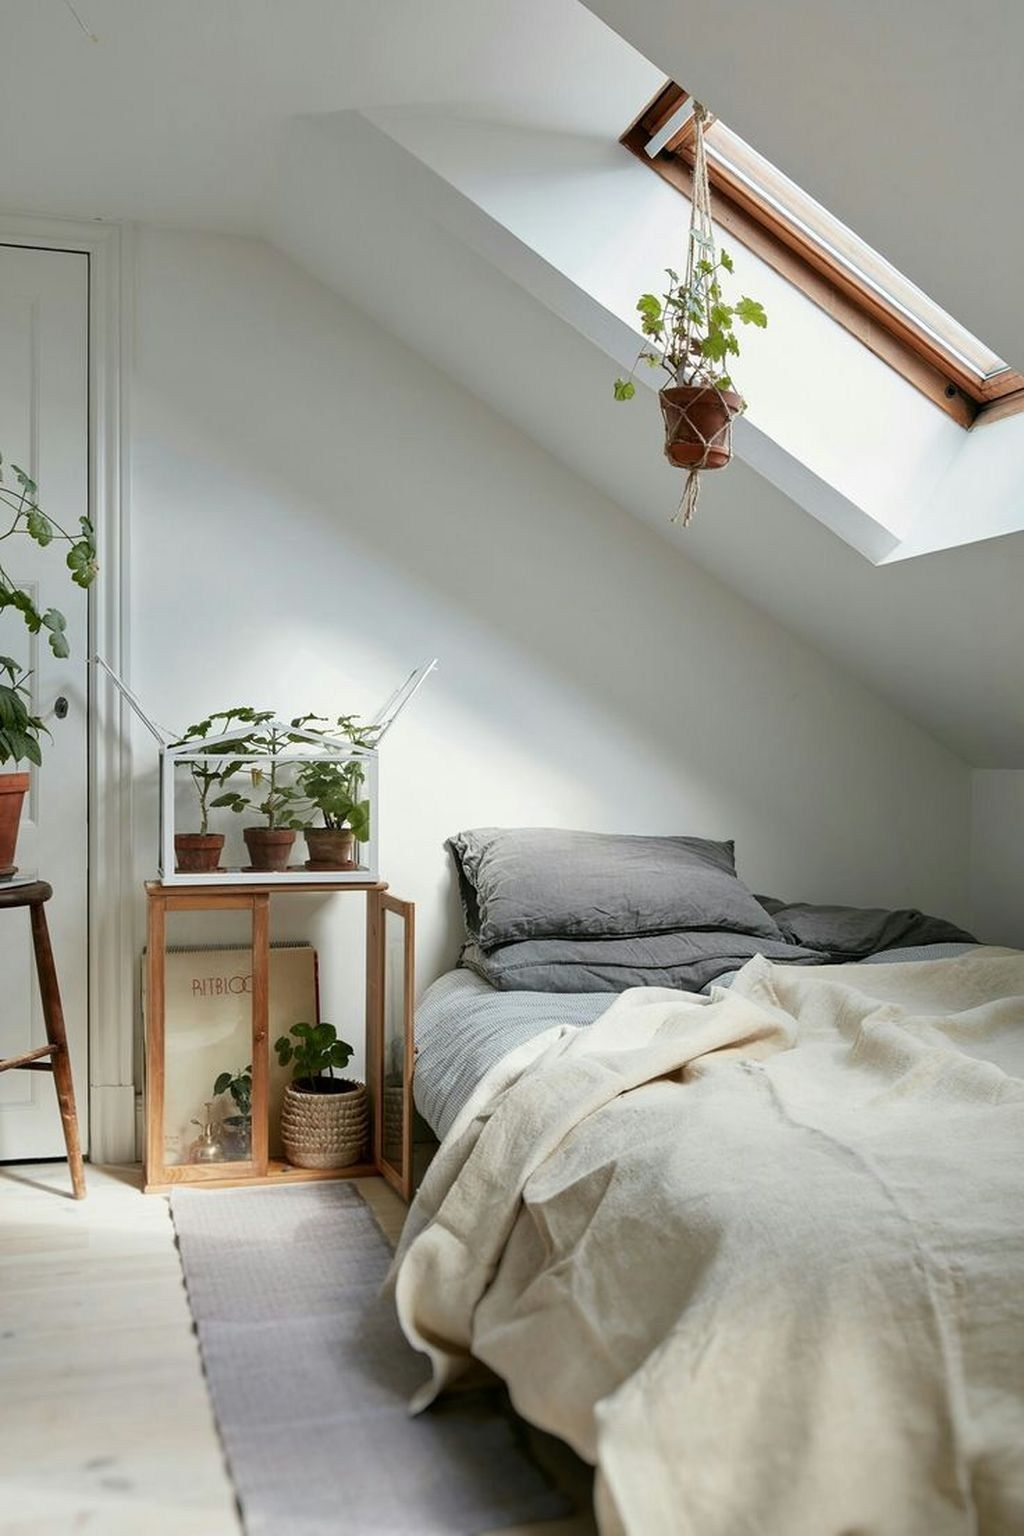 48 Elegant Small Attic Bedroom For Your Home | Cool spaces | Attic ...